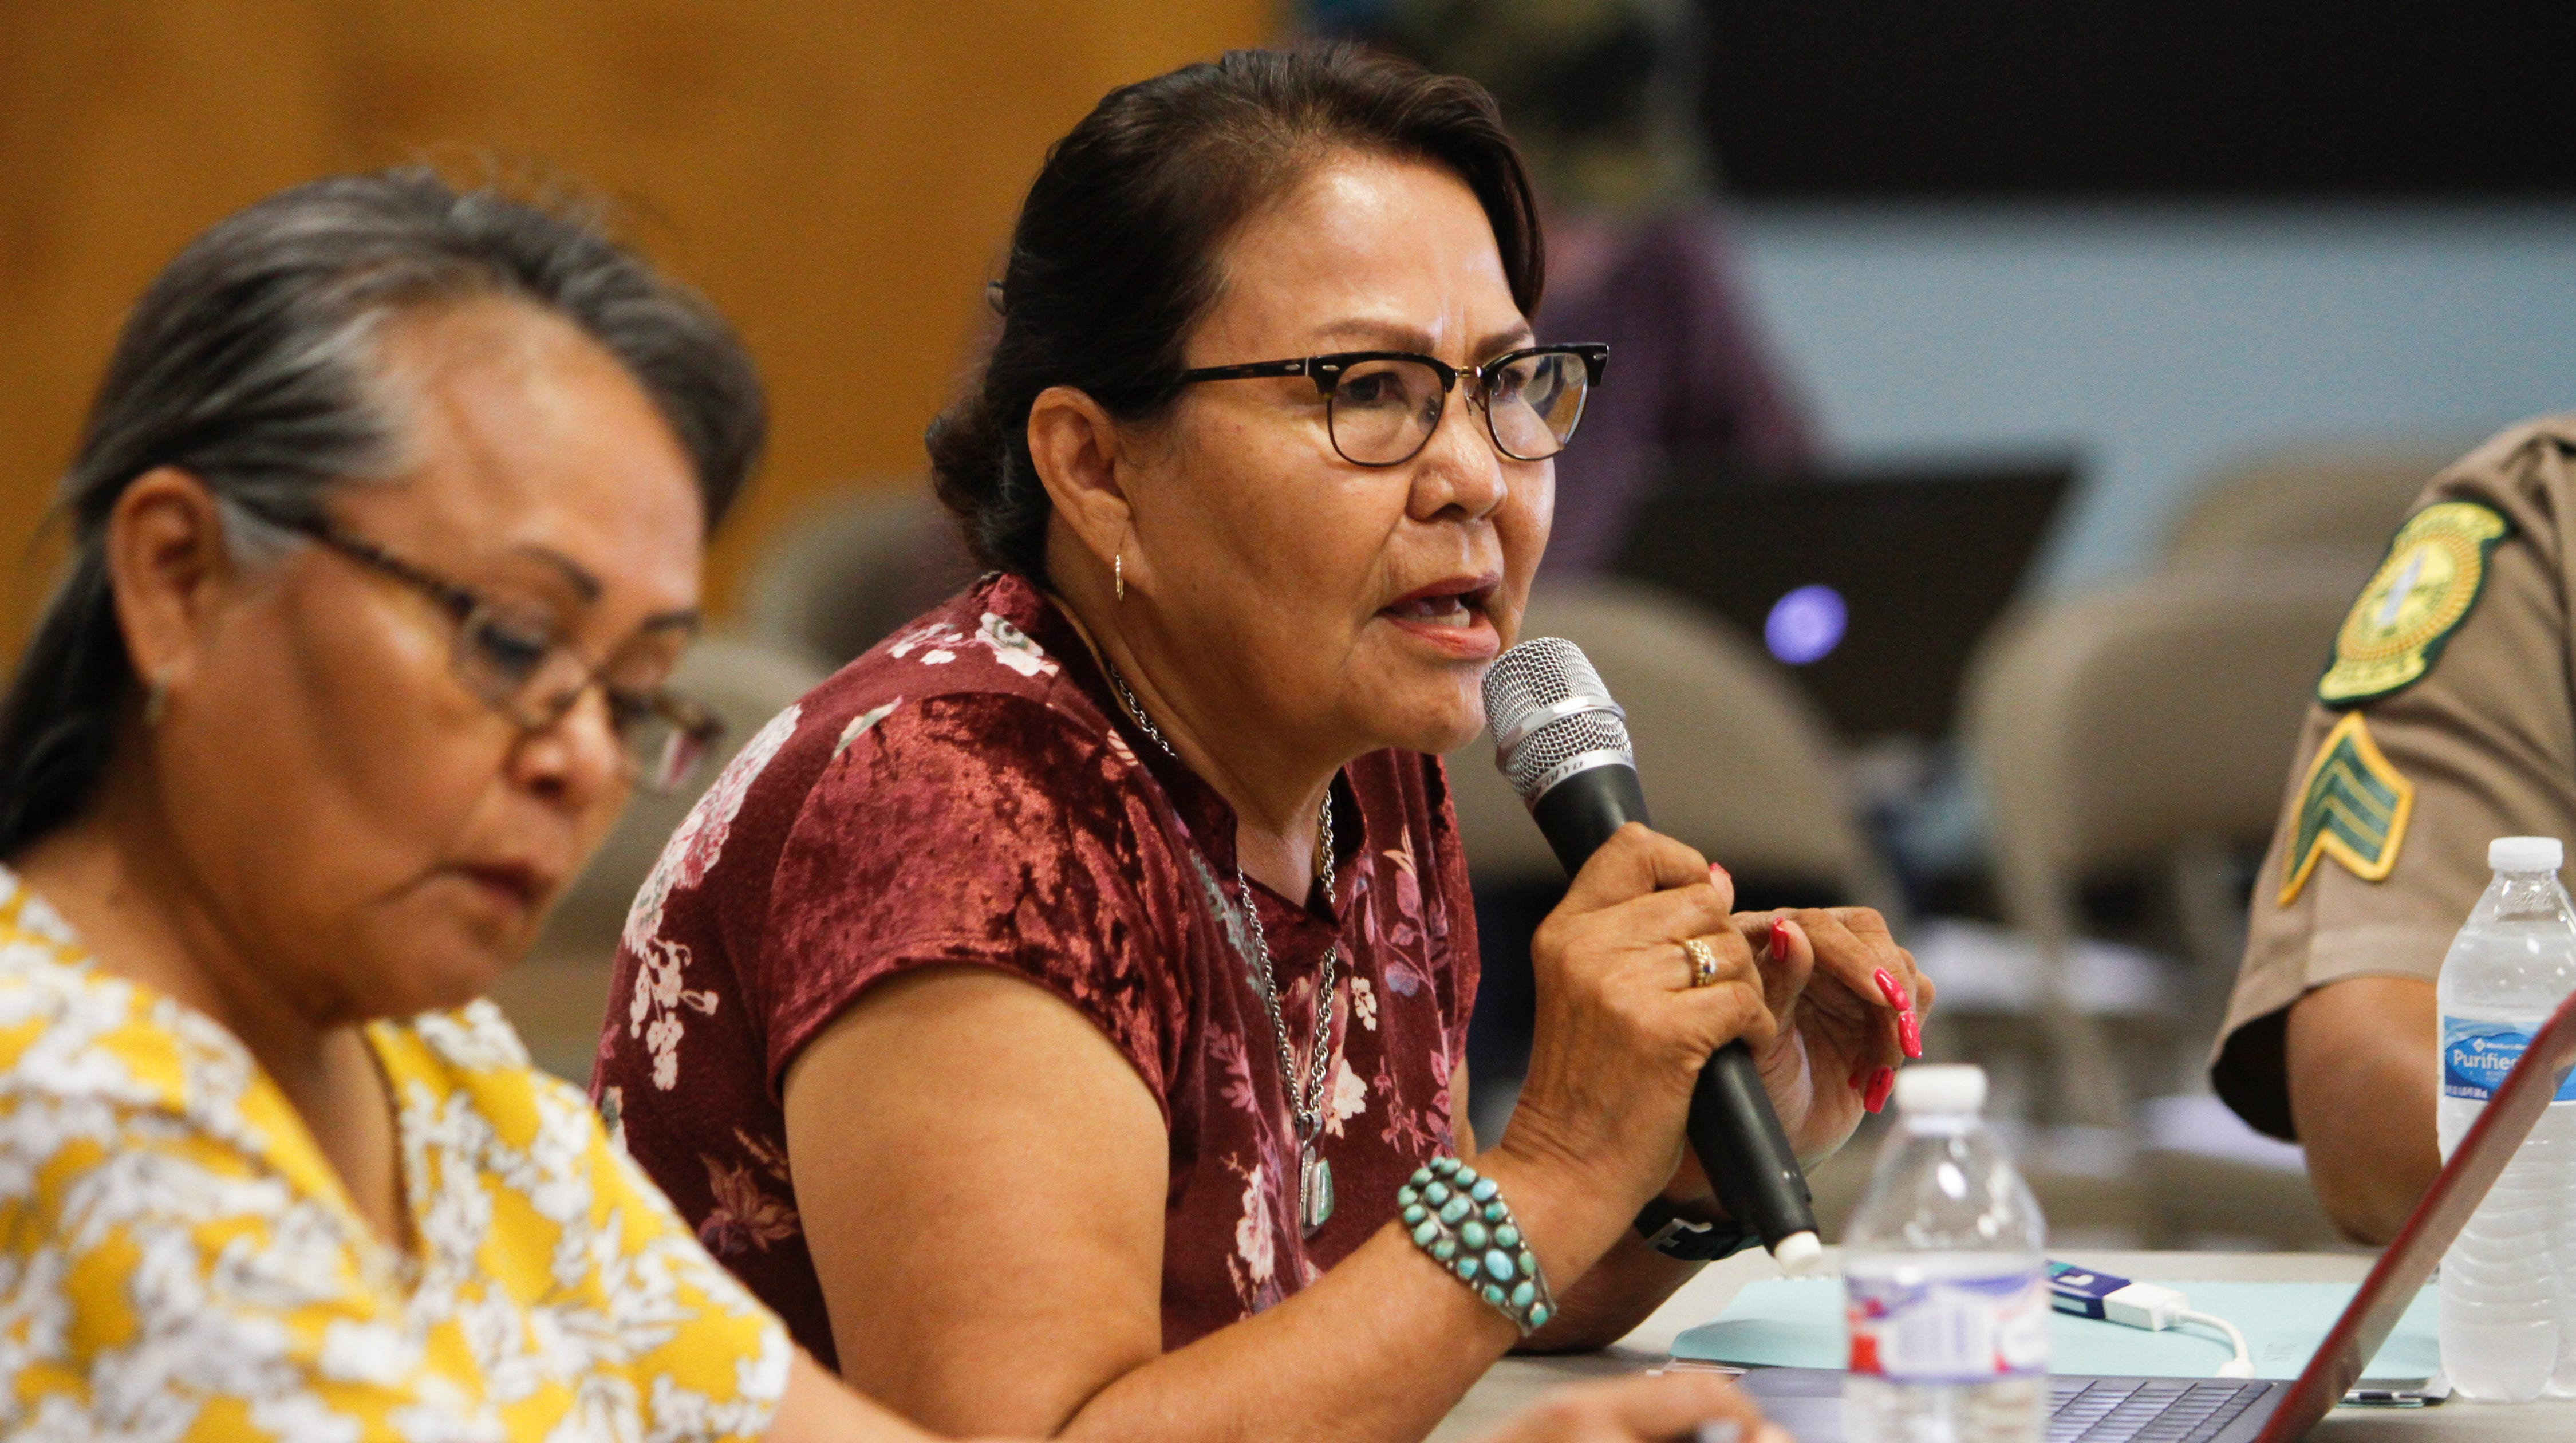 Delores Greyeyes, director for the Navajo Nation Department of Corrections, provides a project update for a courts and public safety building on Monday, Aug. 20, 2018 during the Navajo Nation Council's Law and Order Committee meeting at the Shiprock Chapter house.